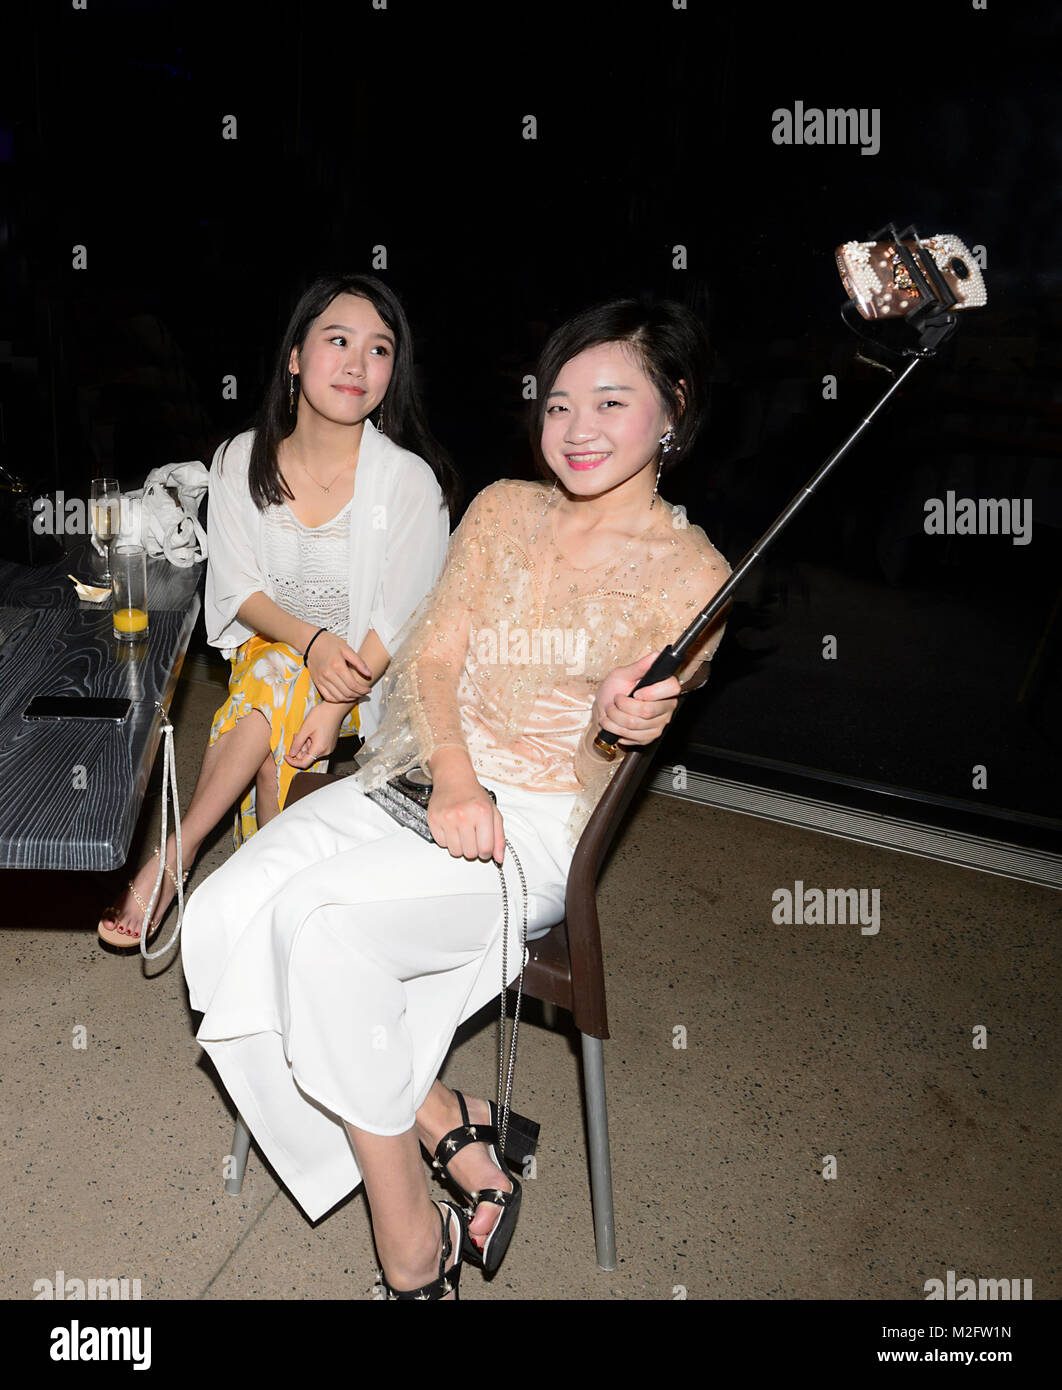 Young Chinese women tourists taking a selfie, Australia Stock Photo